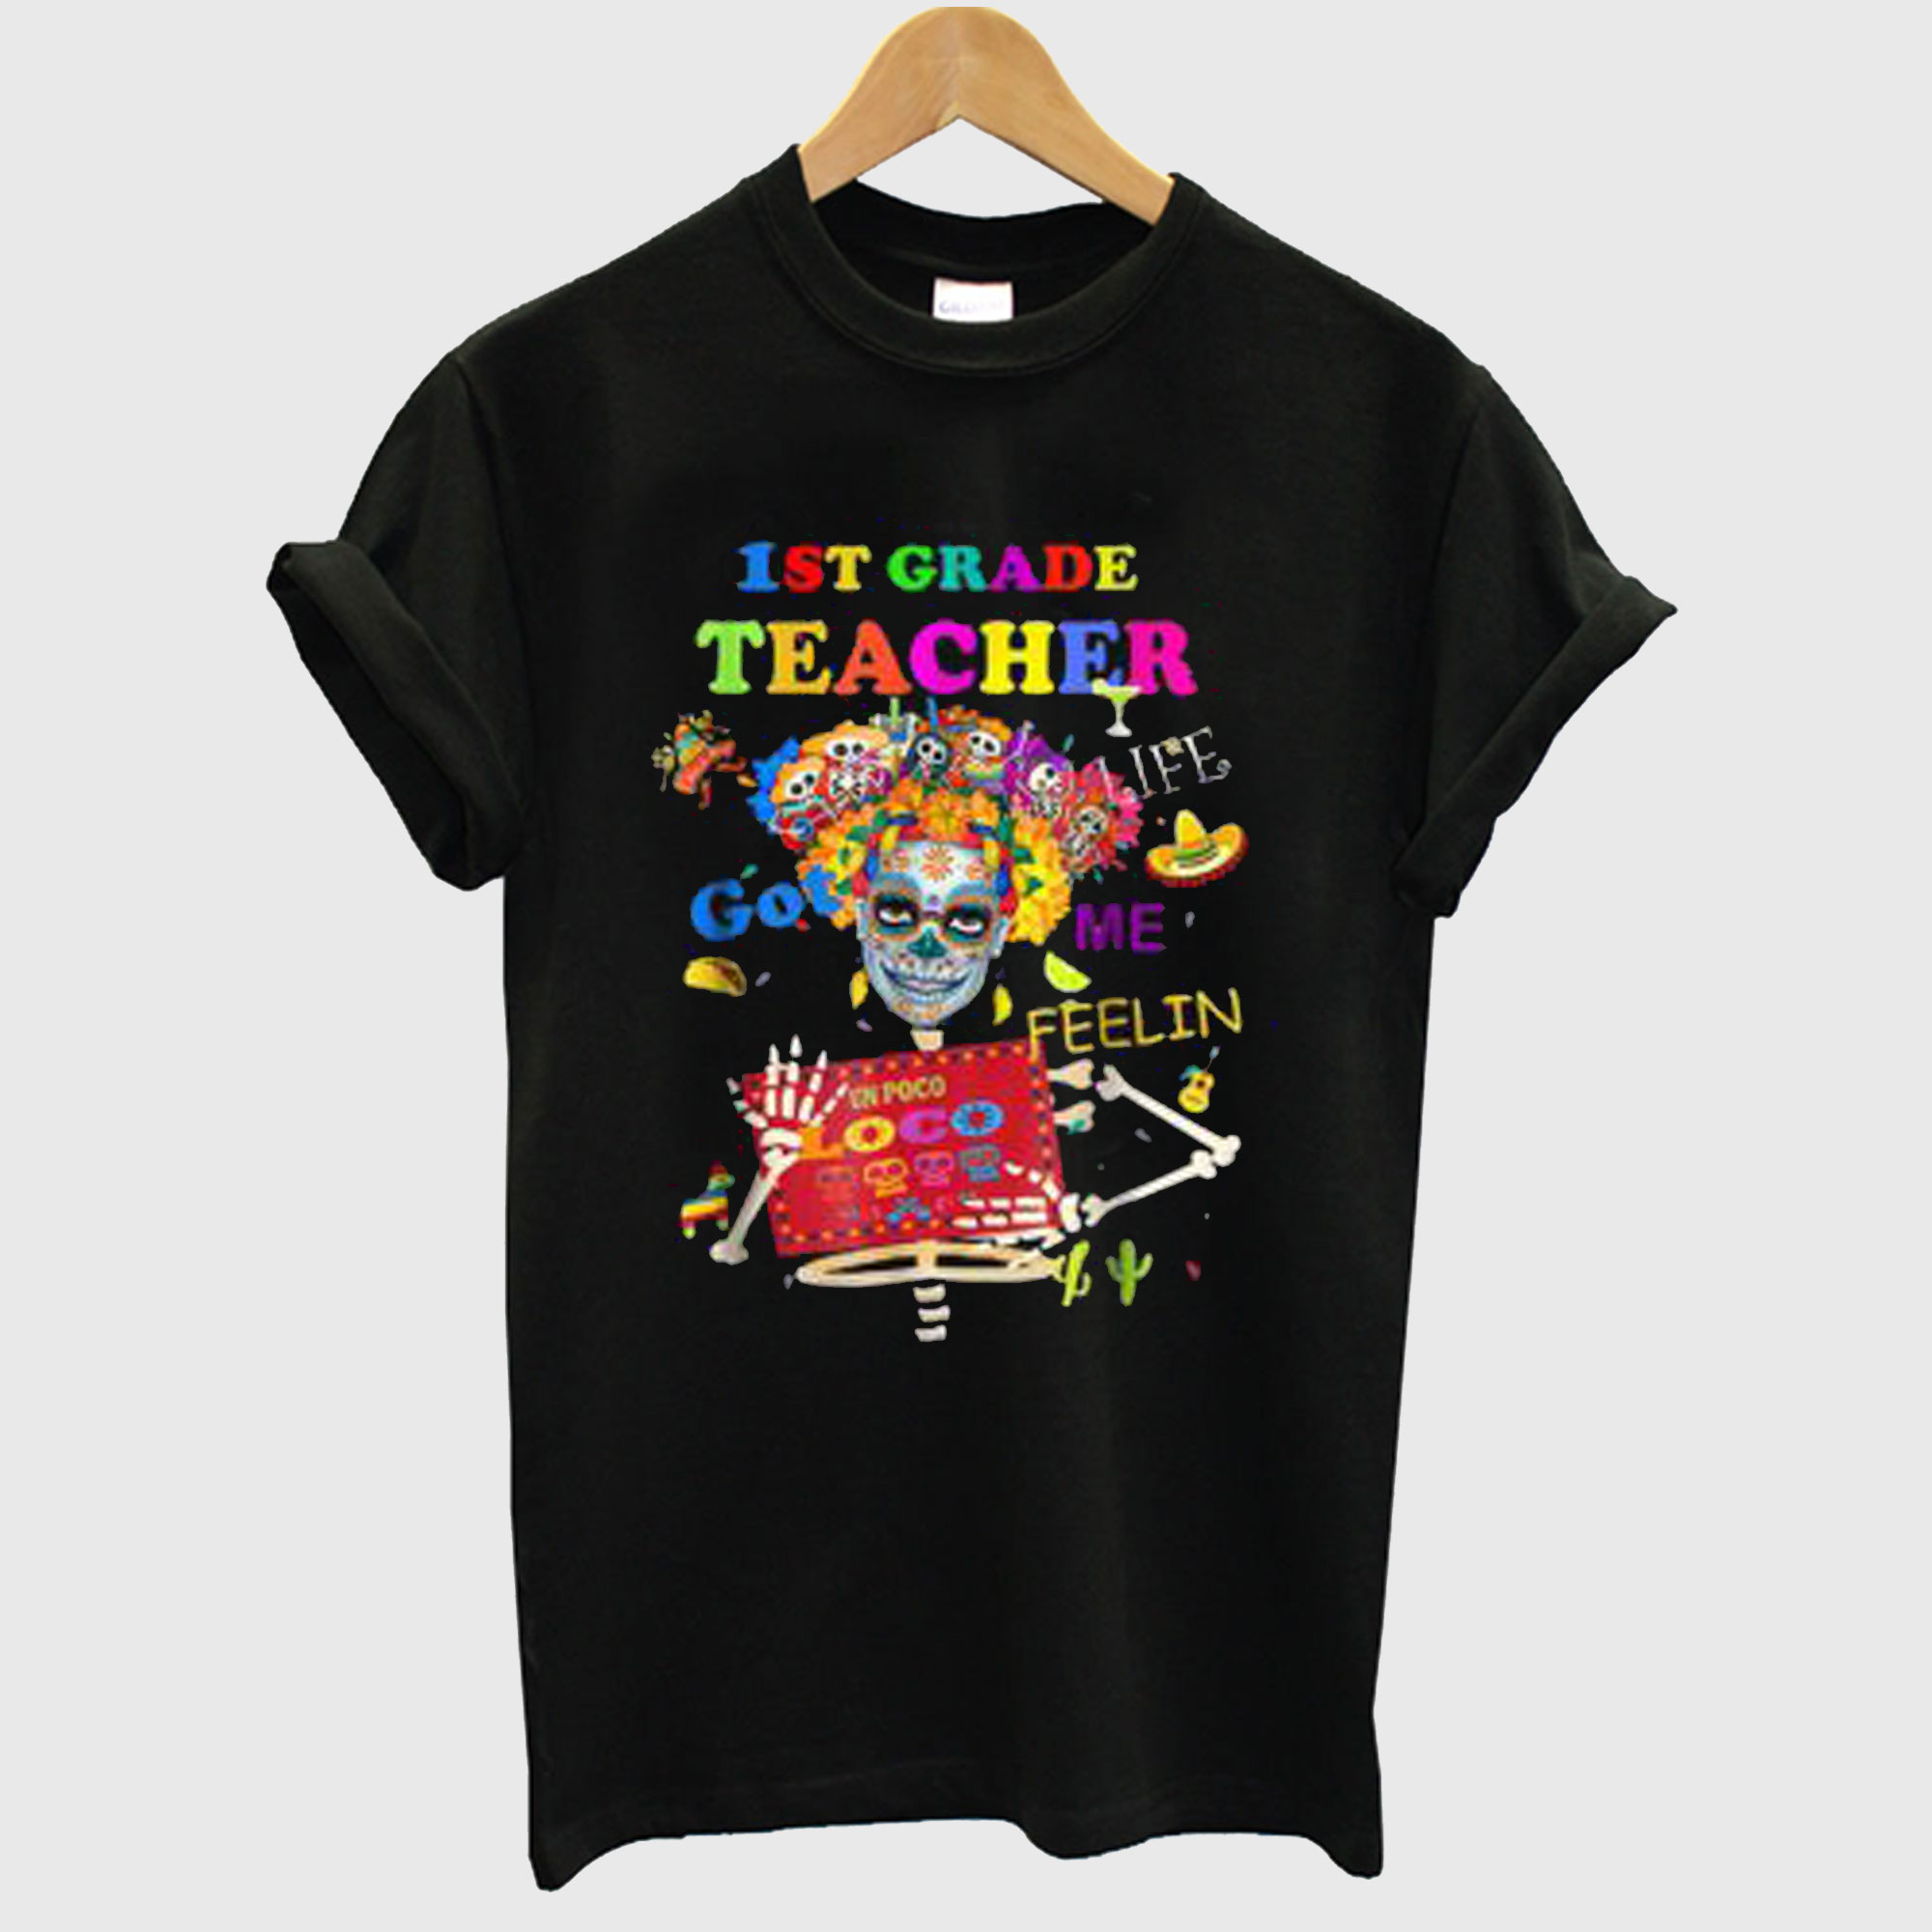 1st Grade Teacher Life Got Me Feelin' Un Poco Loco Flower Skull T-Shirt